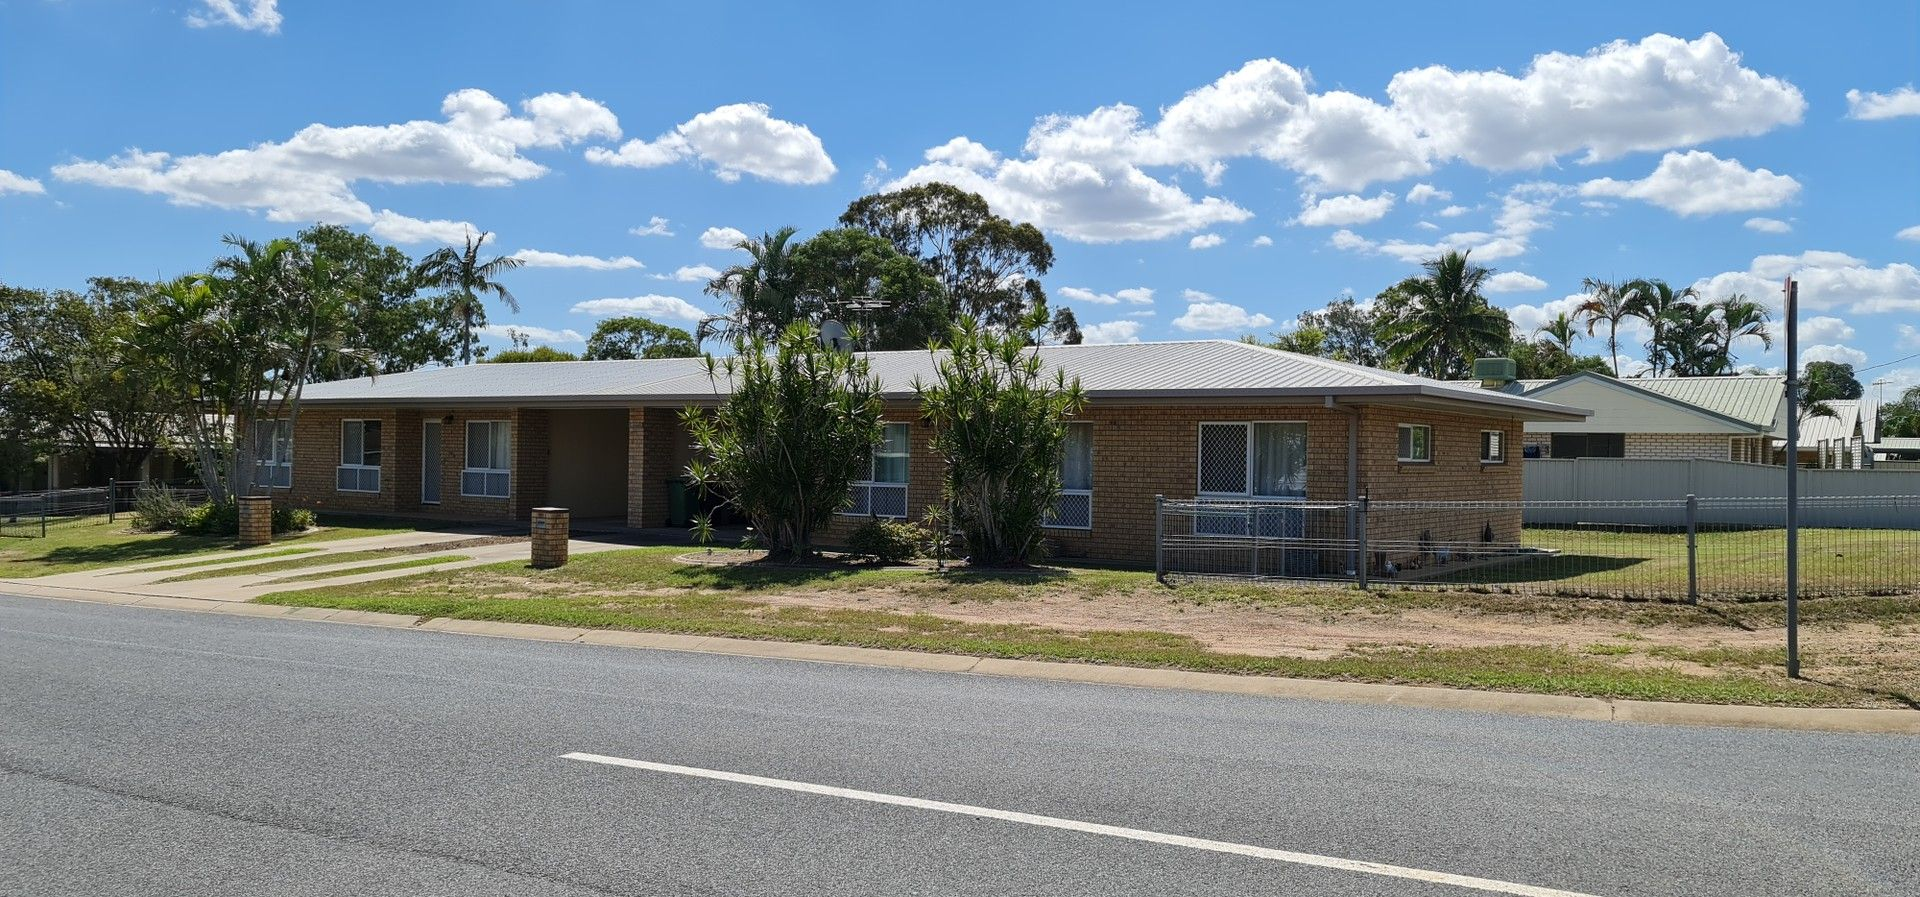 19 Johnson road, Gracemere QLD 4702, Image 0